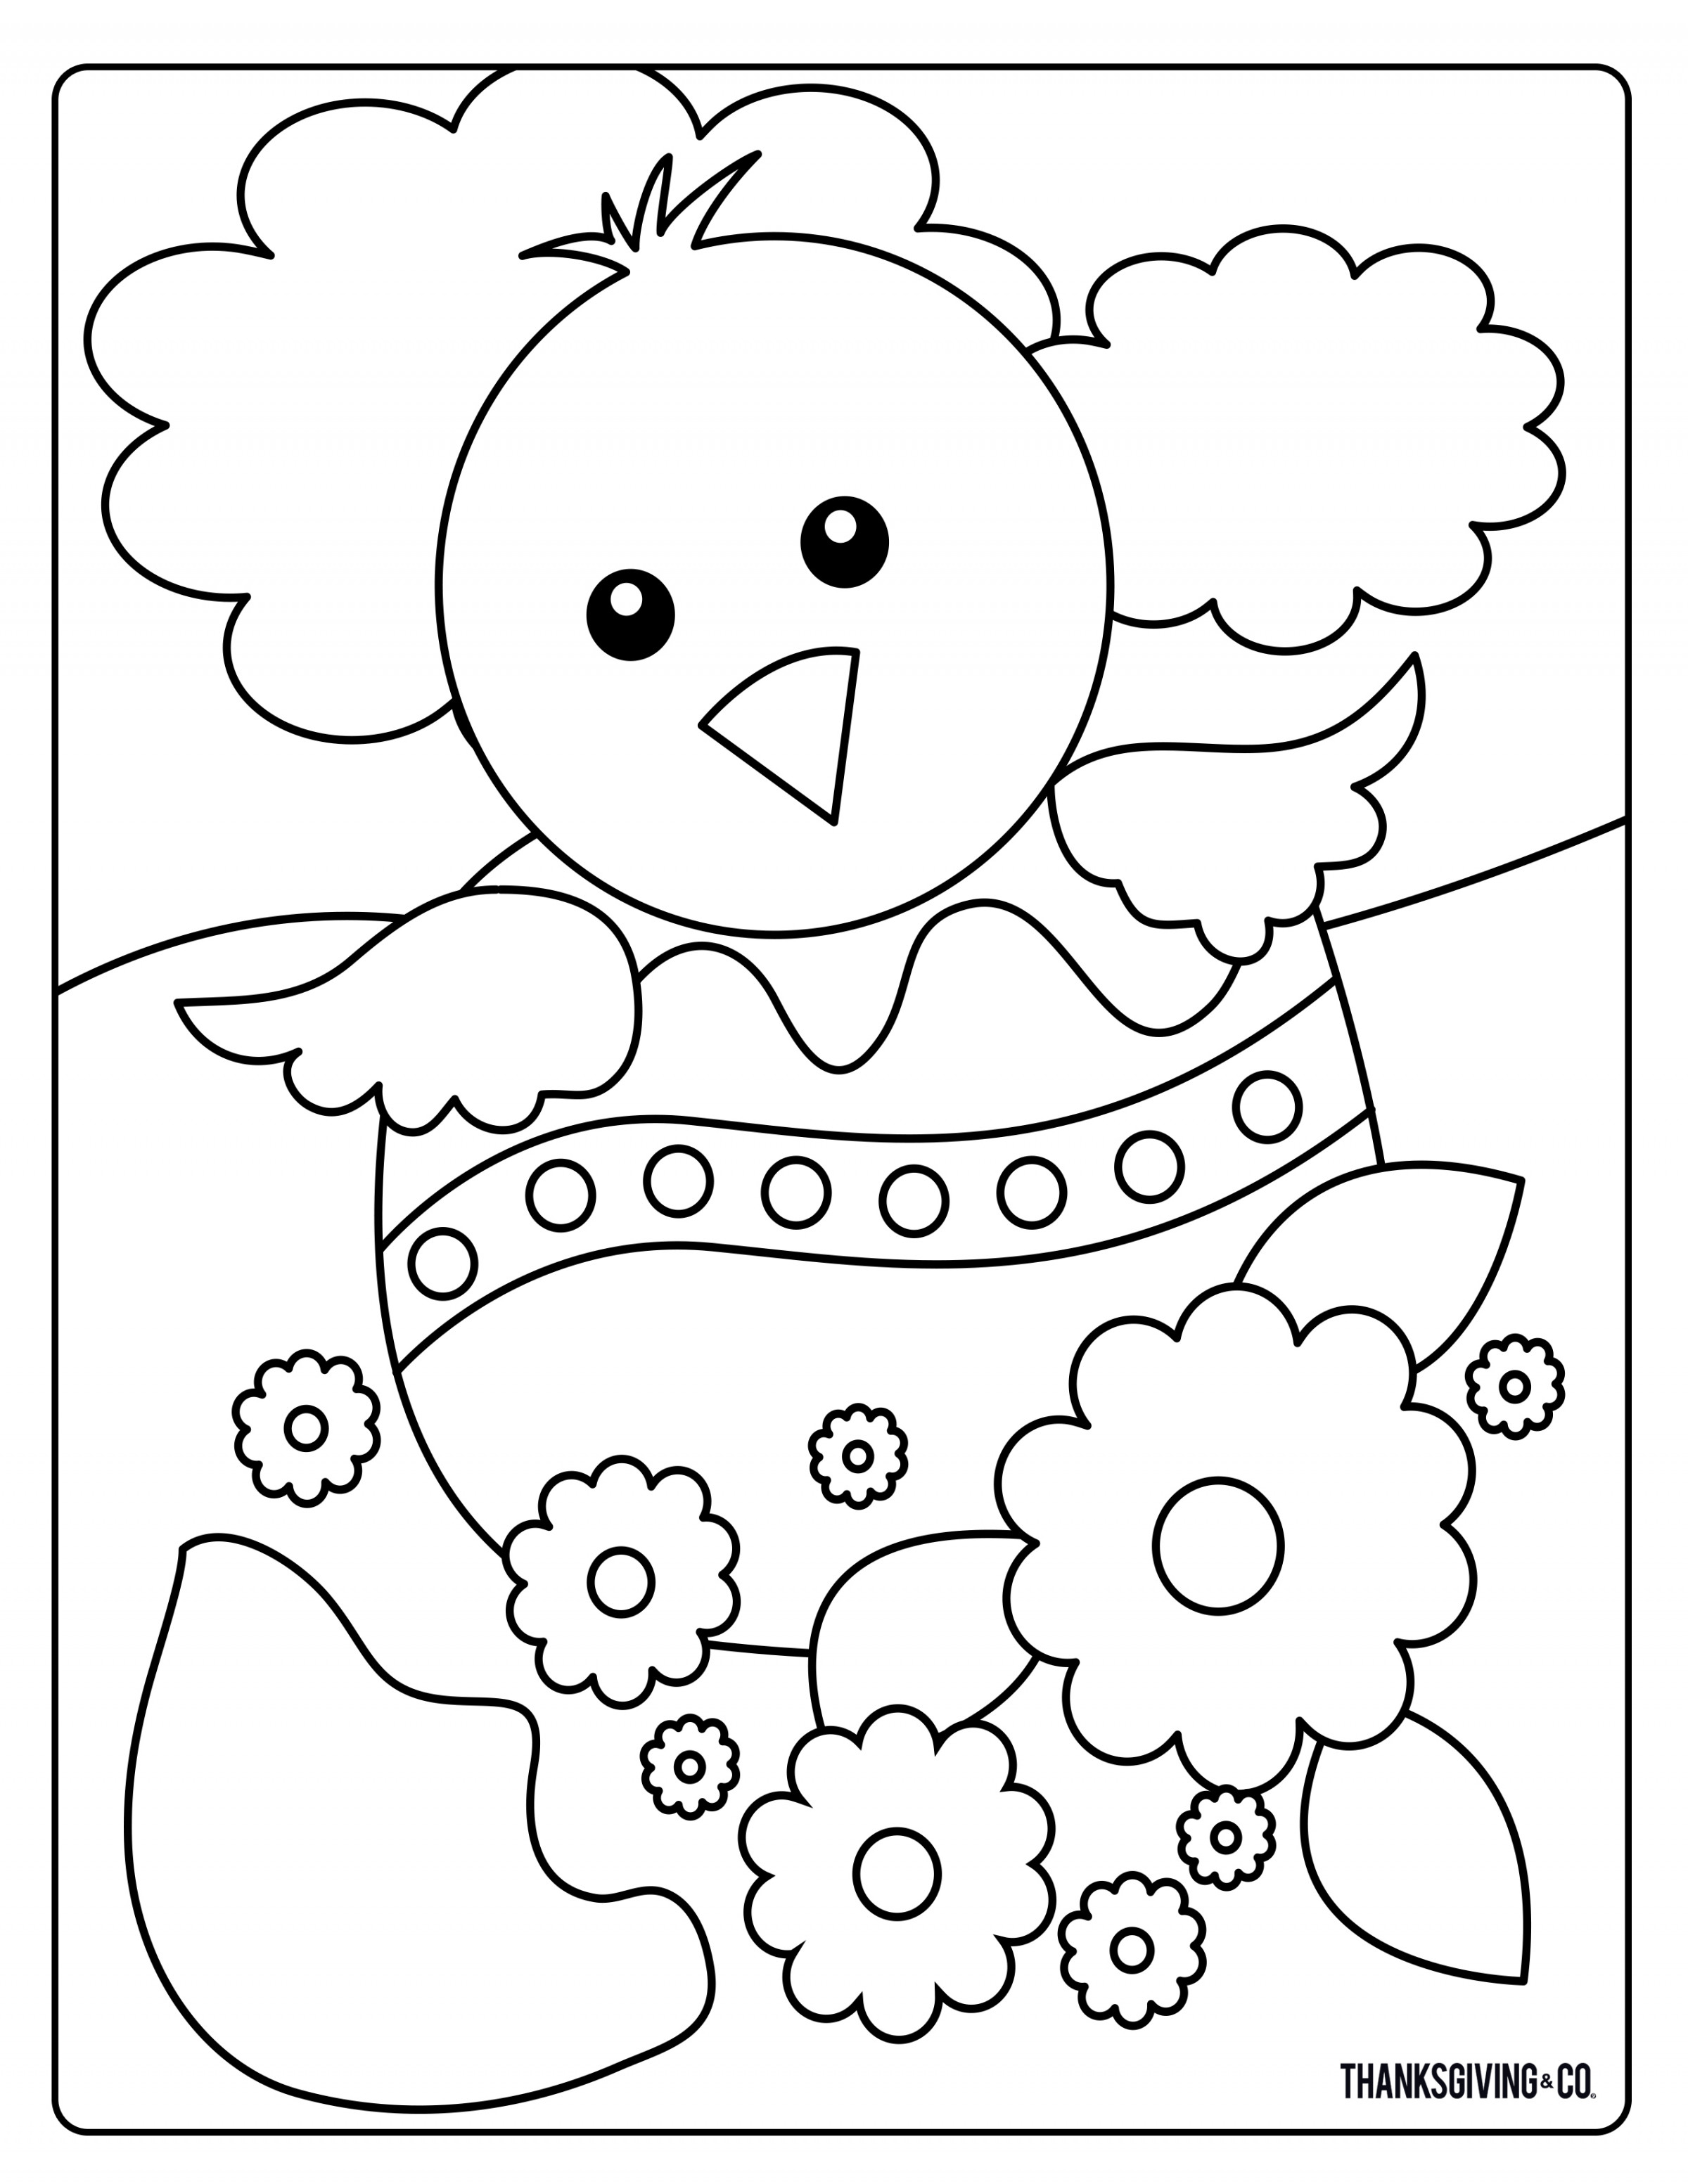 Sweet and sunny spring & Easter coloring pages